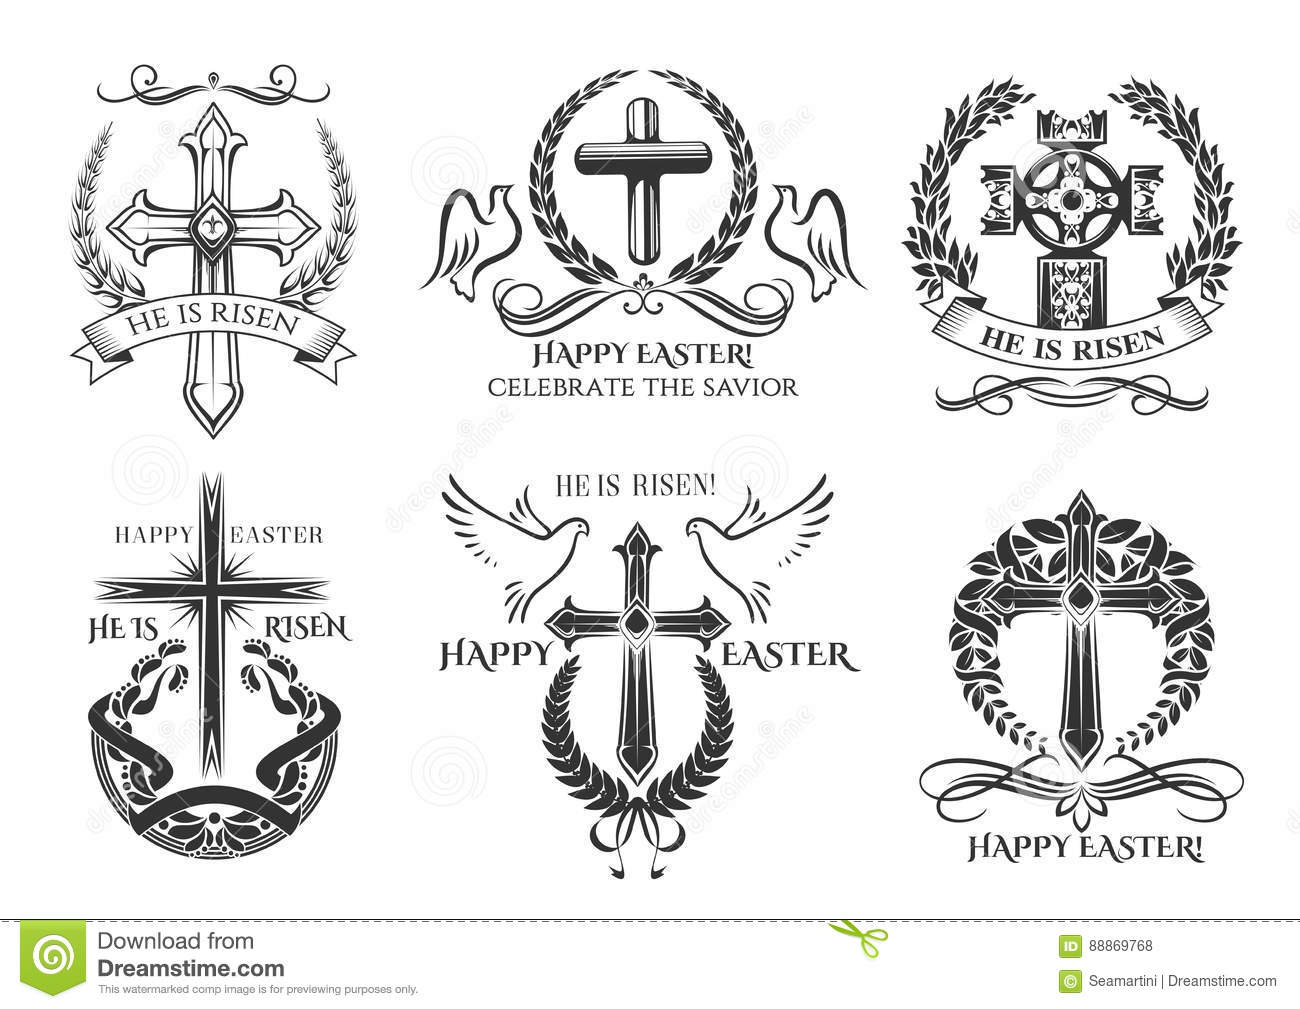 Easter symbol crucifix for vector paschal greeting stock vector easter symbol crucifix for vector paschal greeting biocorpaavc Image collections